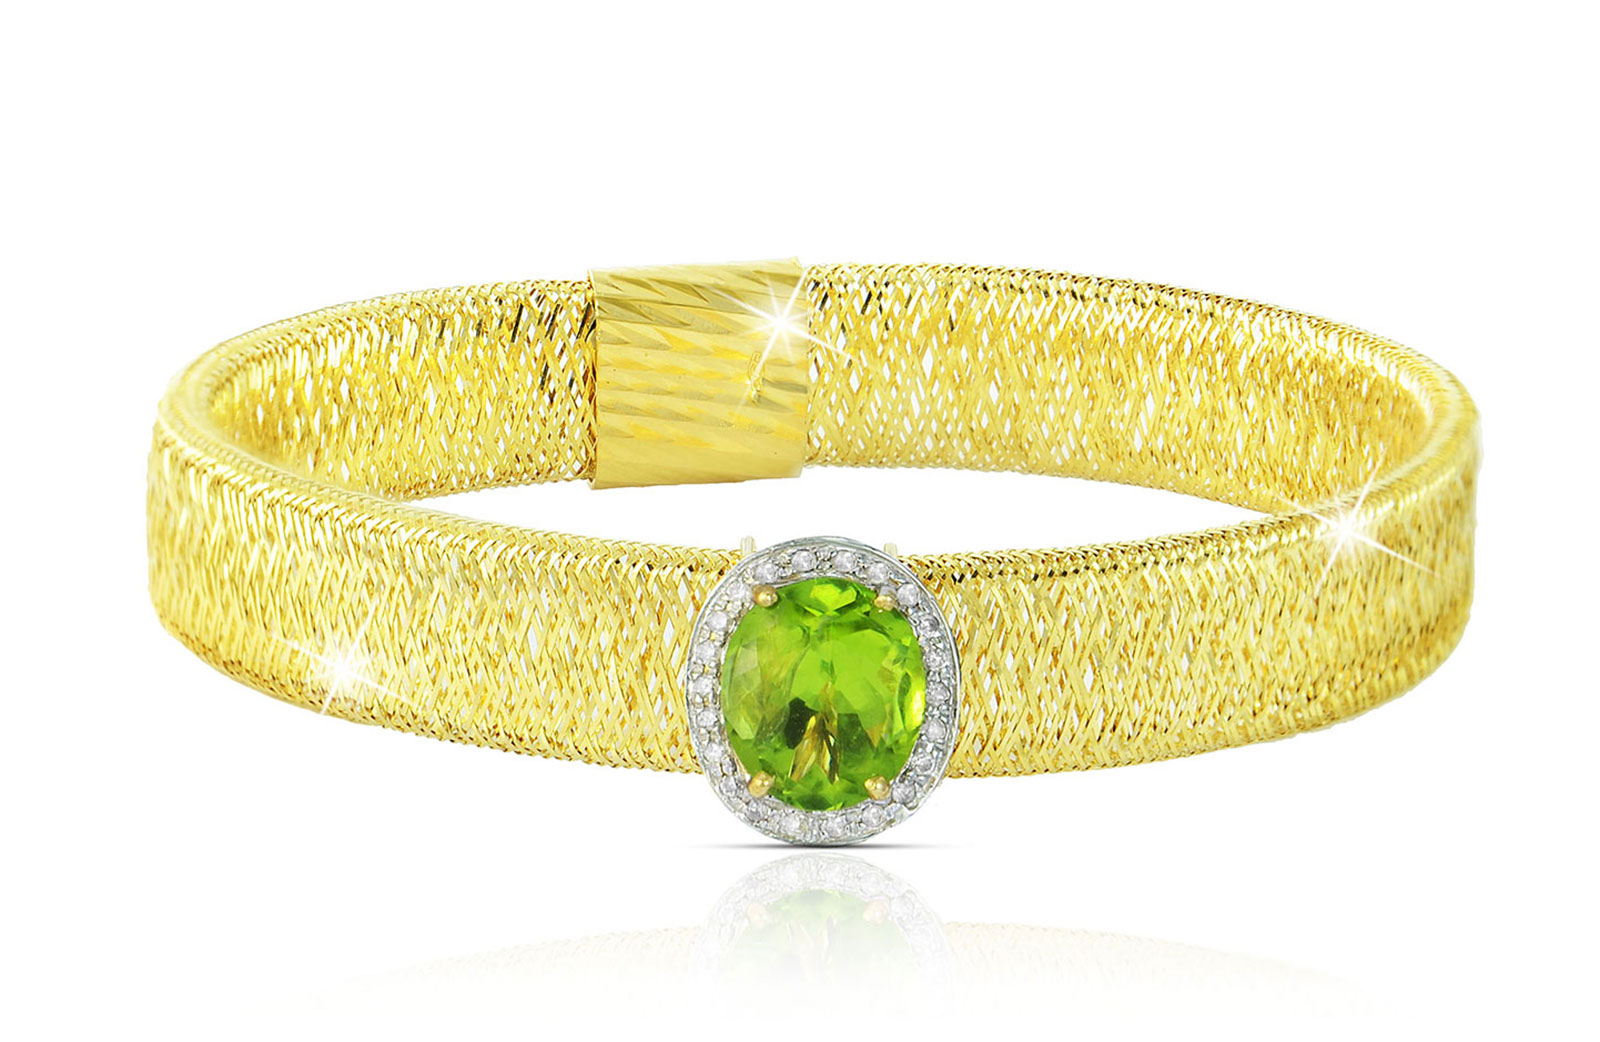 Vera Perla 18k  Gold 10mm Genuine Oval   Cut Peridot 0.12Ct Genuine Diamonds Bracelet